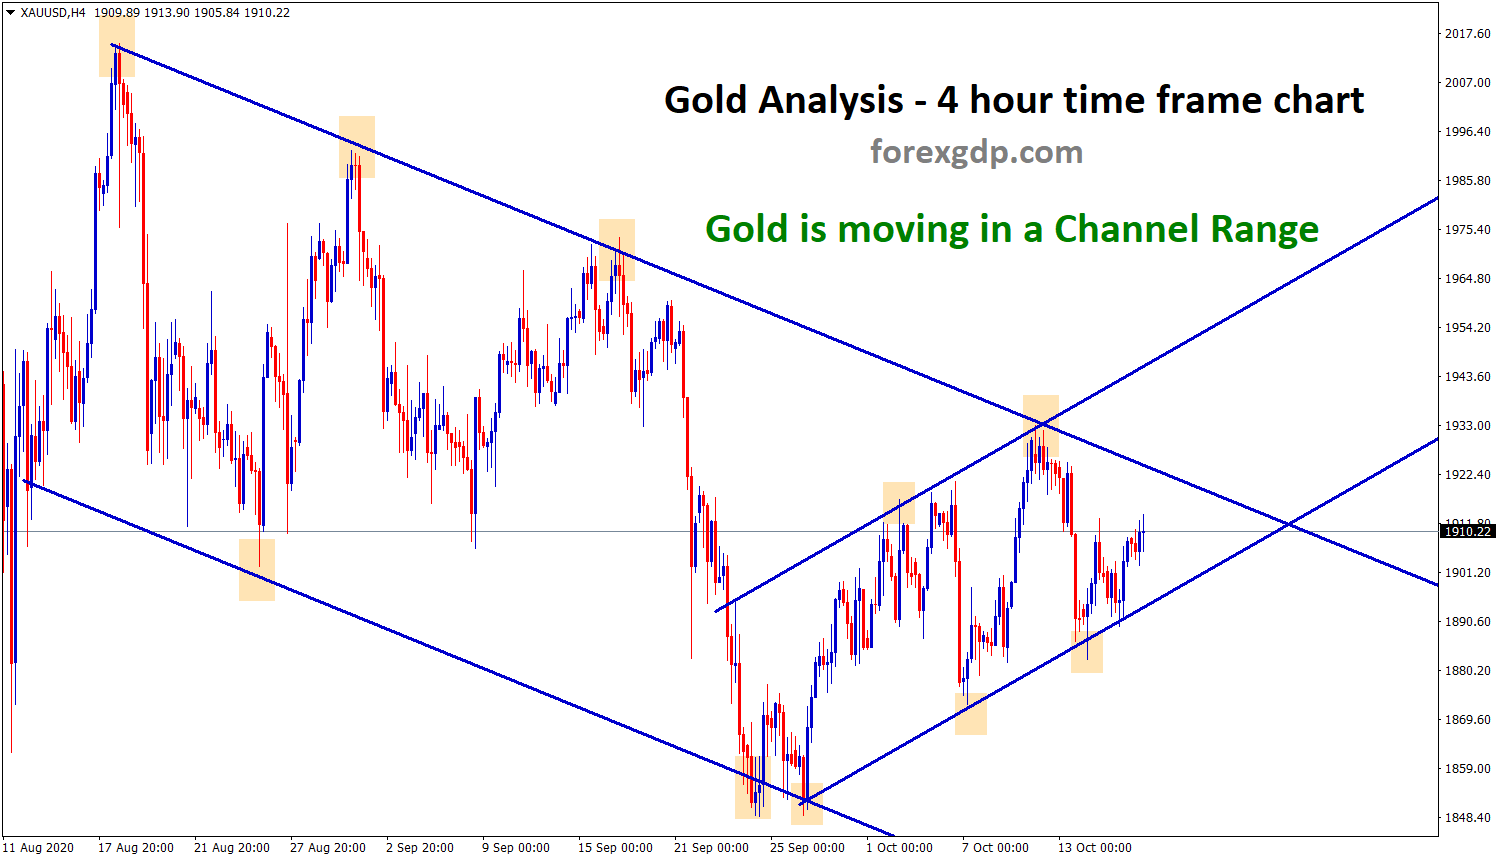 gold is moving in an channel range